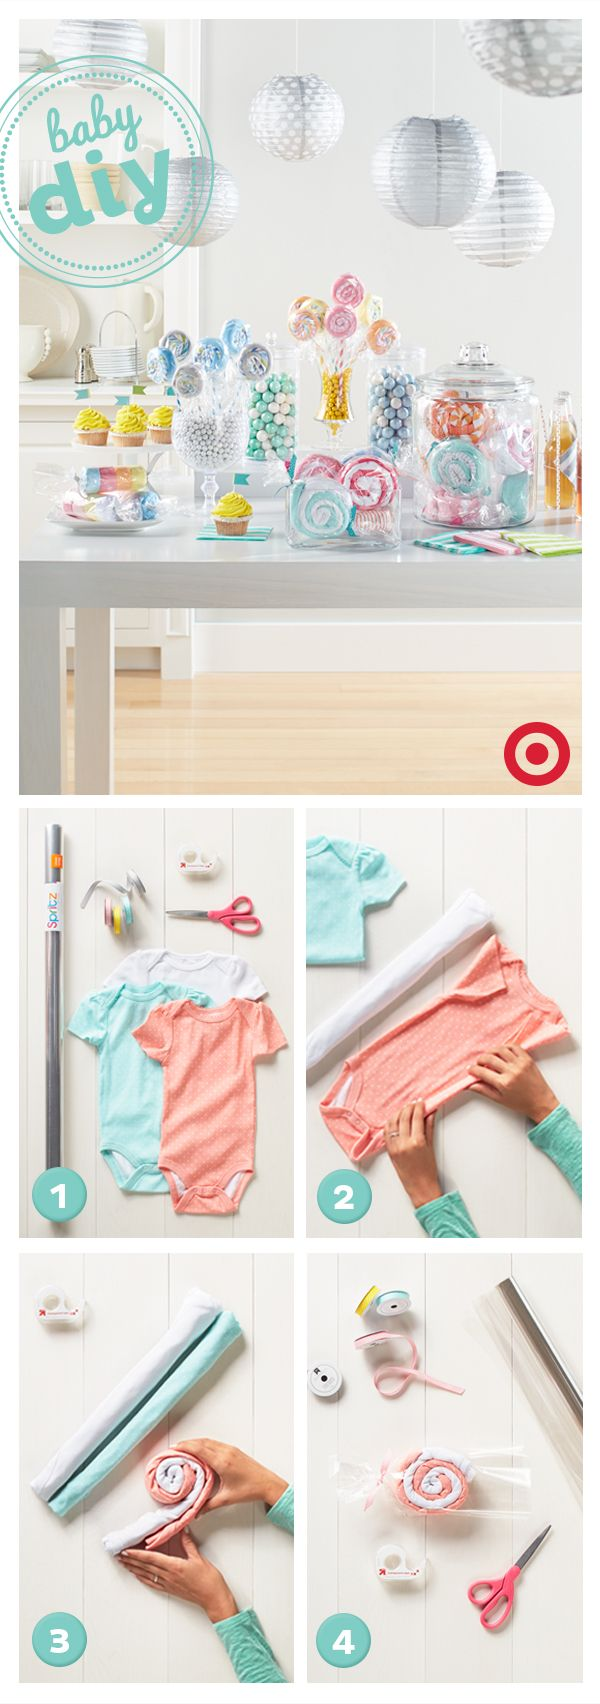 "Here's a sweet DIY idea for the next baby shower you throw. Turn newborn bodysuits into ""candies"" in a few simple steps. Find everything you'll need, wrapping paper, cellophane, ribbons and more, at Target.com."